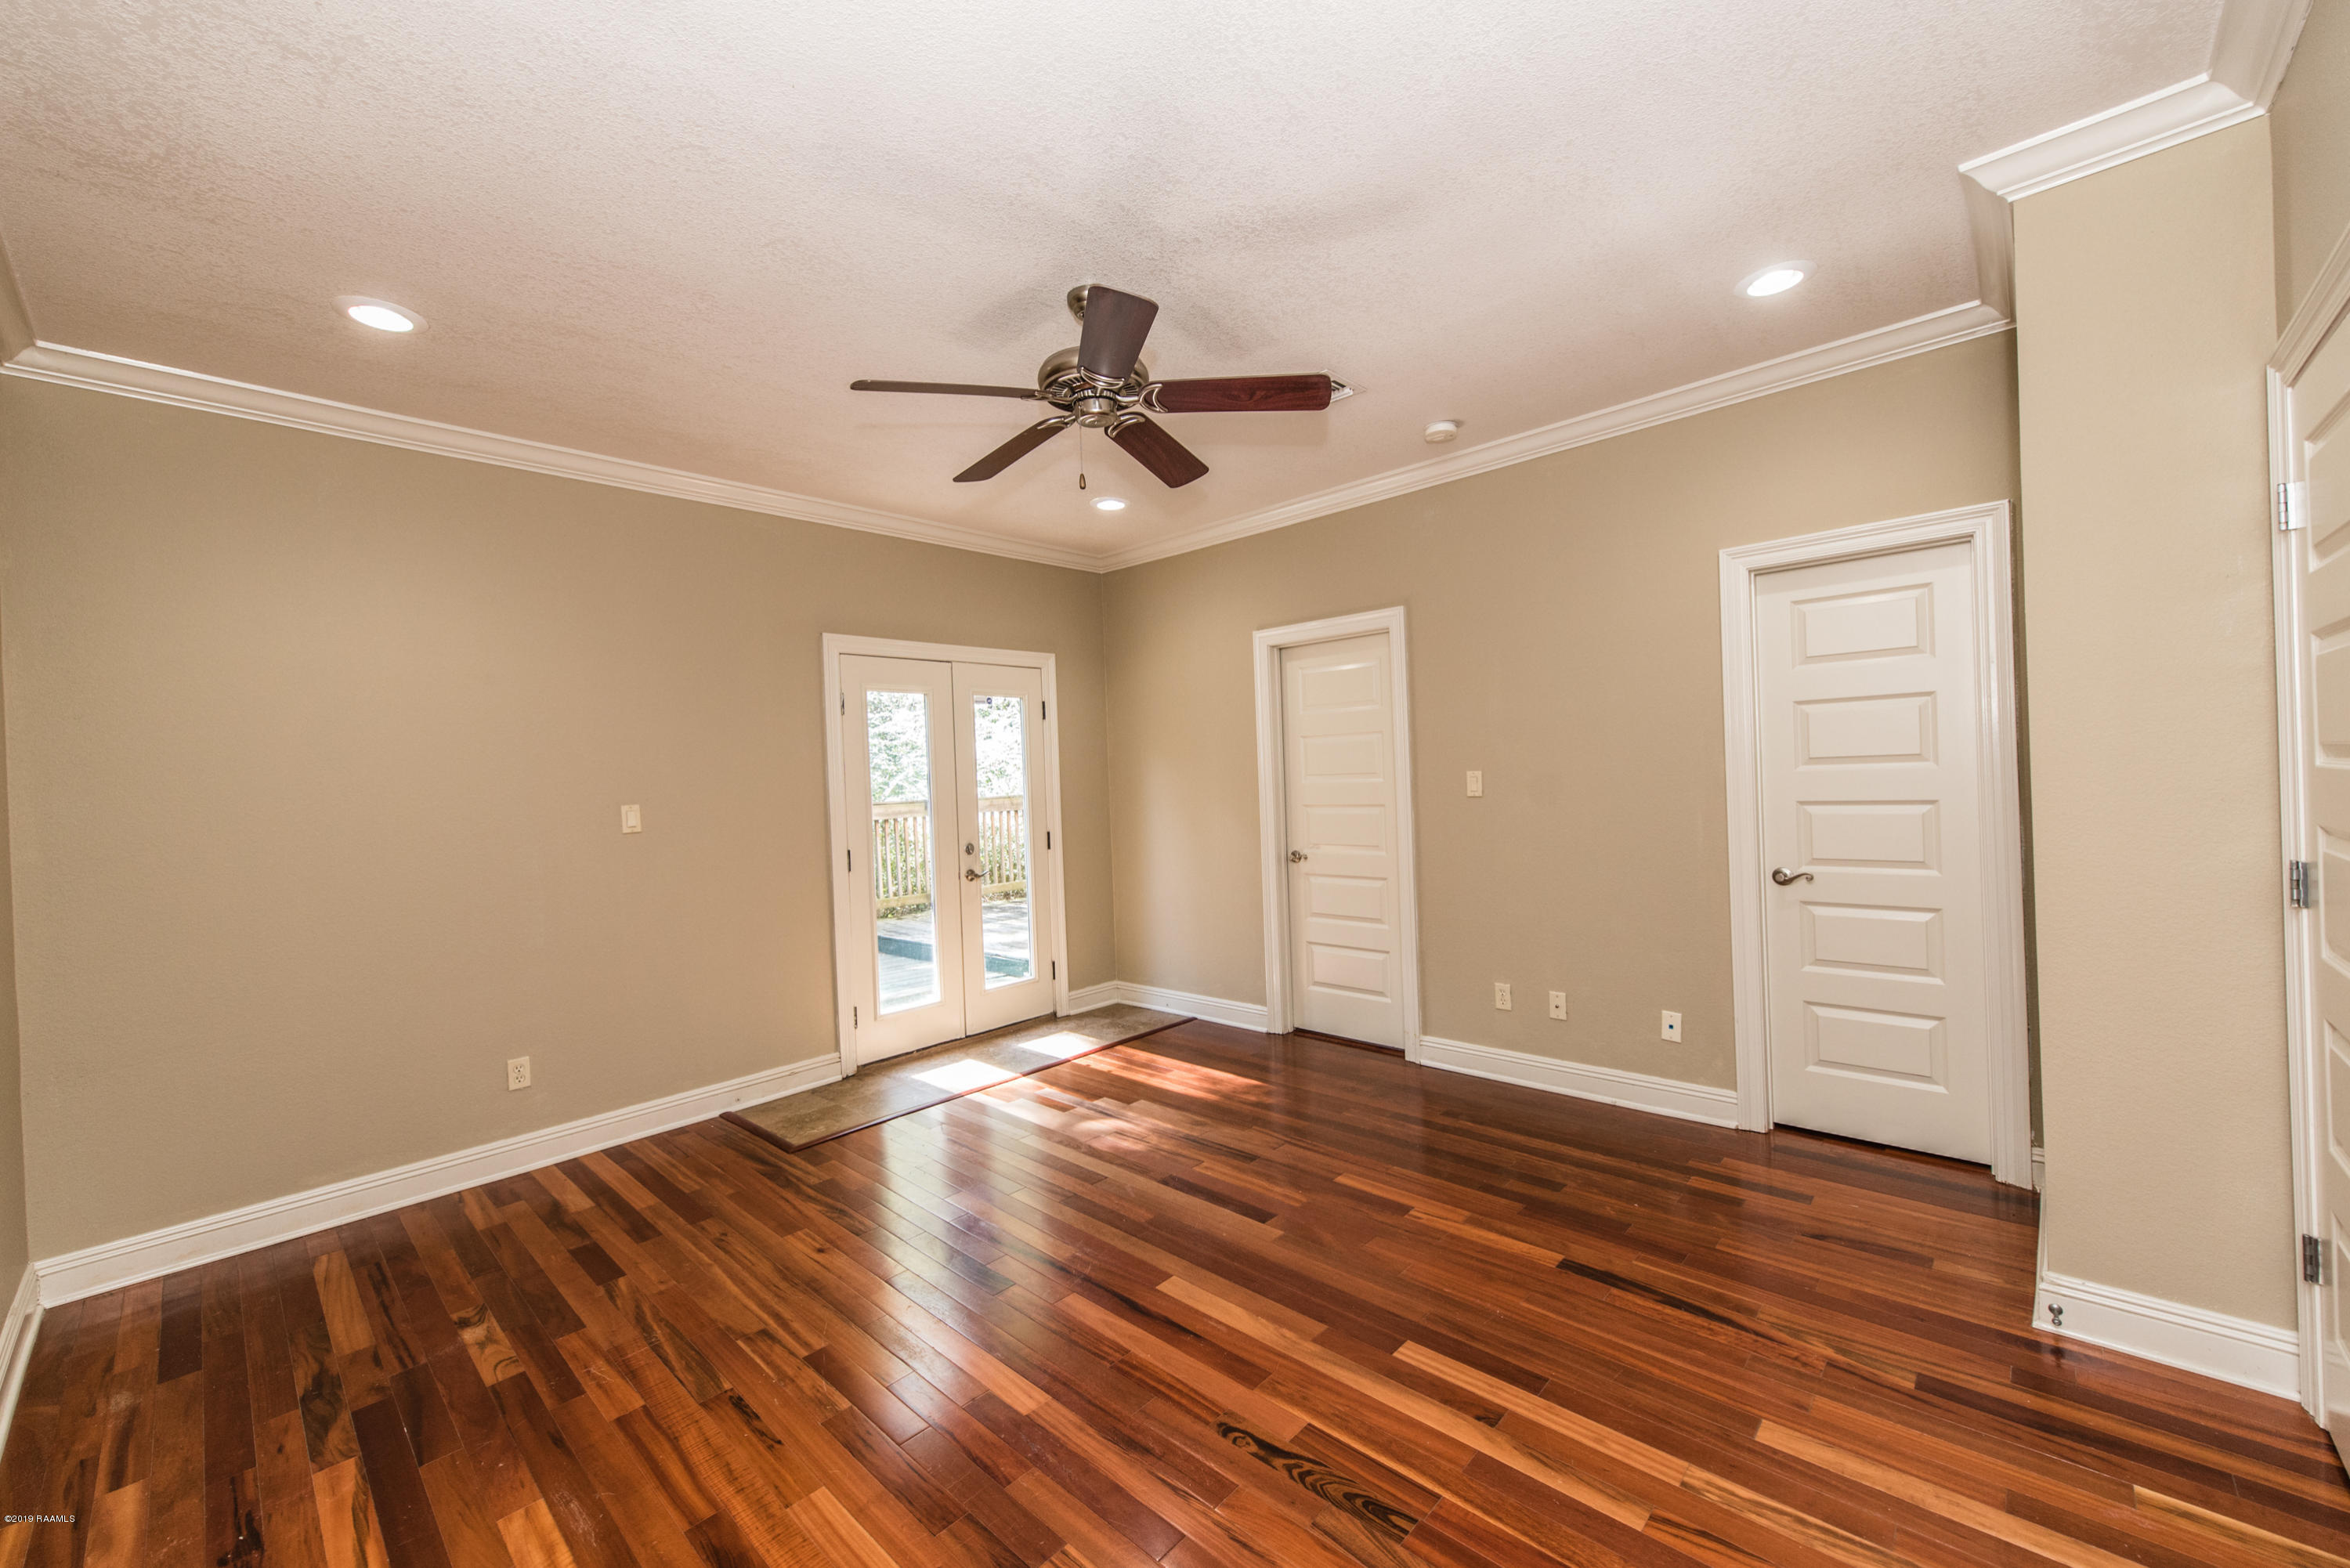 120 Ambiance Circle, Lafayette, LA 70508 Photo #9